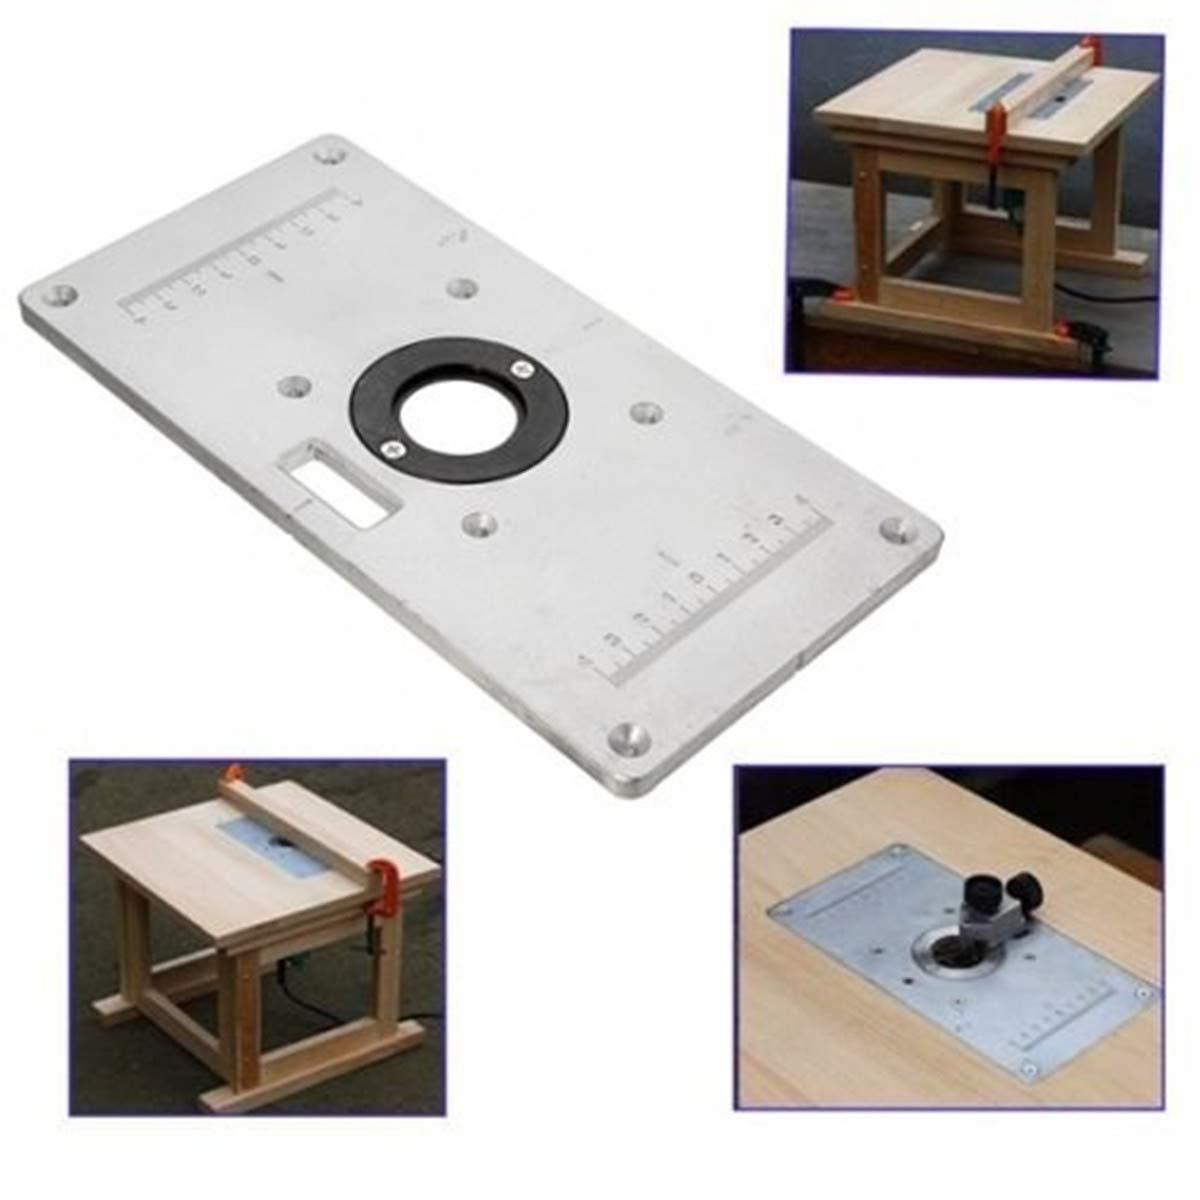 Tanchen 9.3x4.7x0.3in Aluminum Router Table Insert Plate For Wood Working Benches